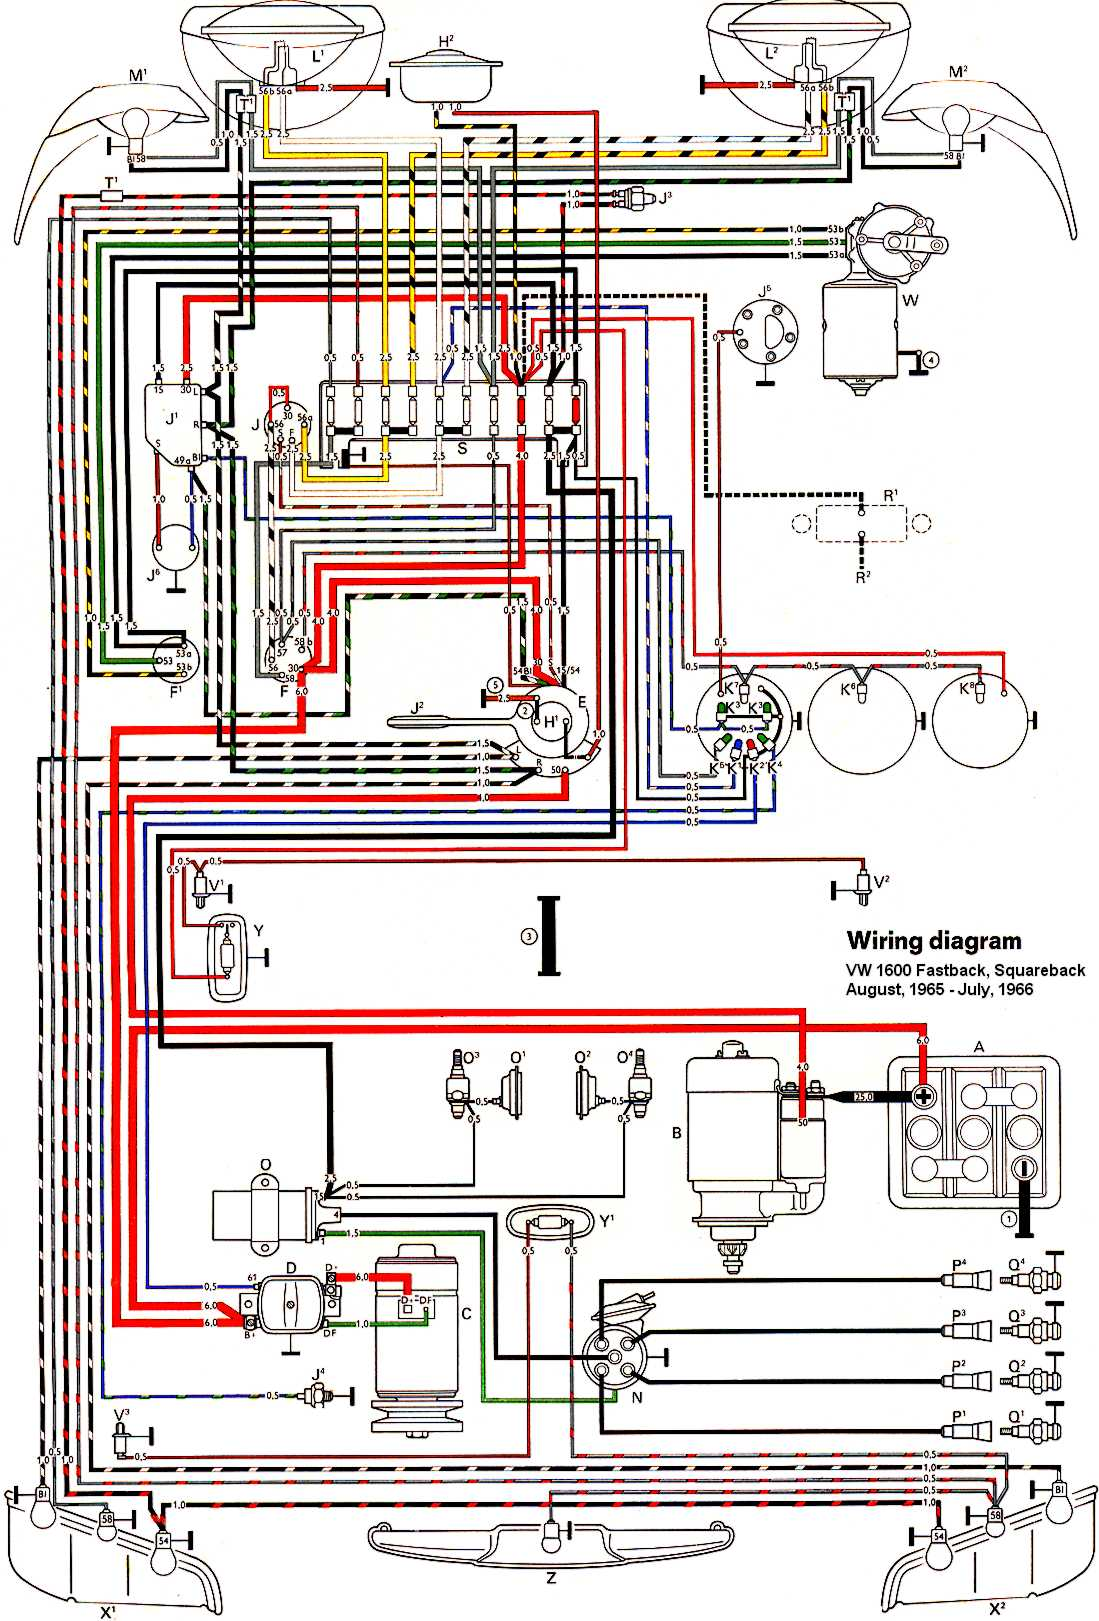 type3_1600_66 vw thing wiring diagram 1974 beetle heater diagram \u2022 wiring 1971 vw bus wiring diagram at bayanpartner.co